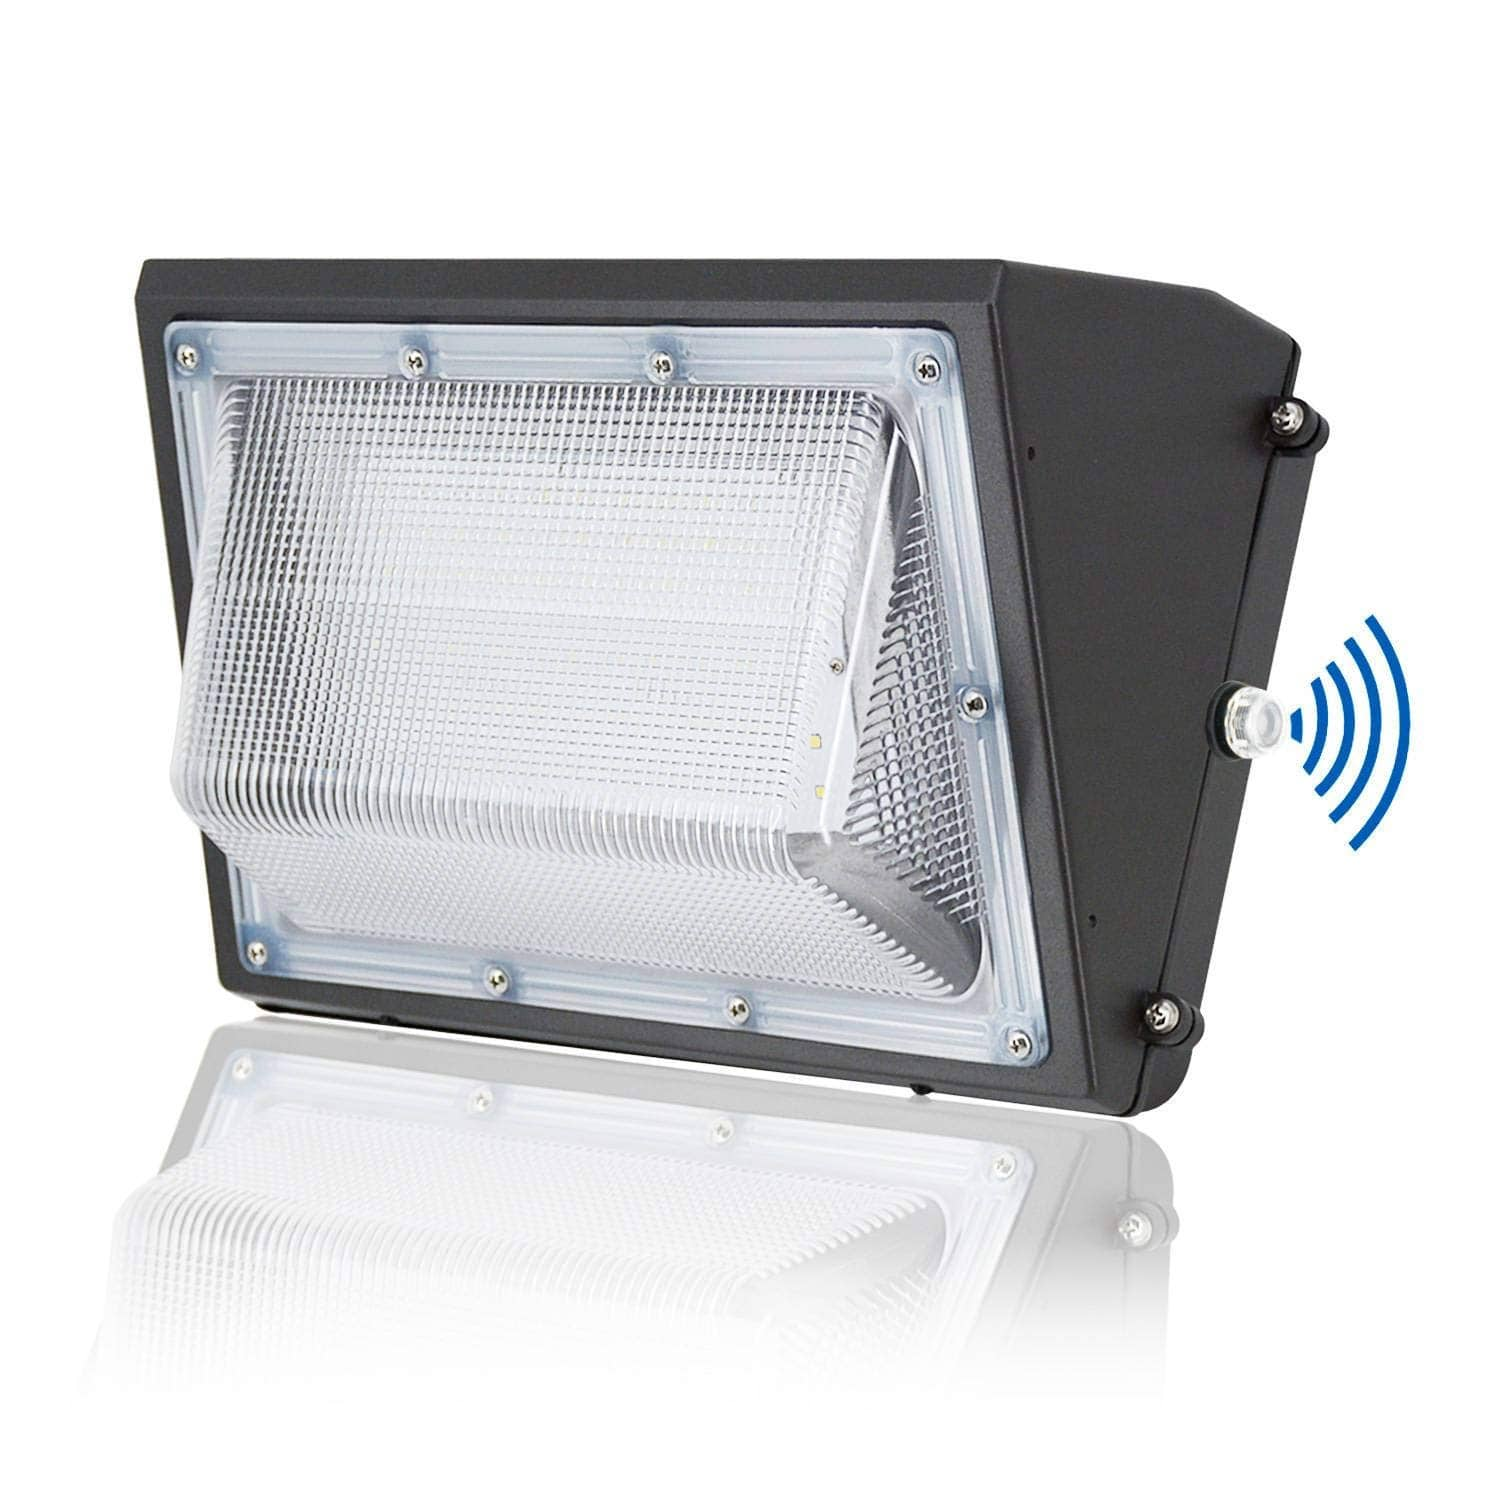 60W LED Security Wall Pack Light, Dusk-to-dawn Outdoor Flood Yard Lighting $48.74